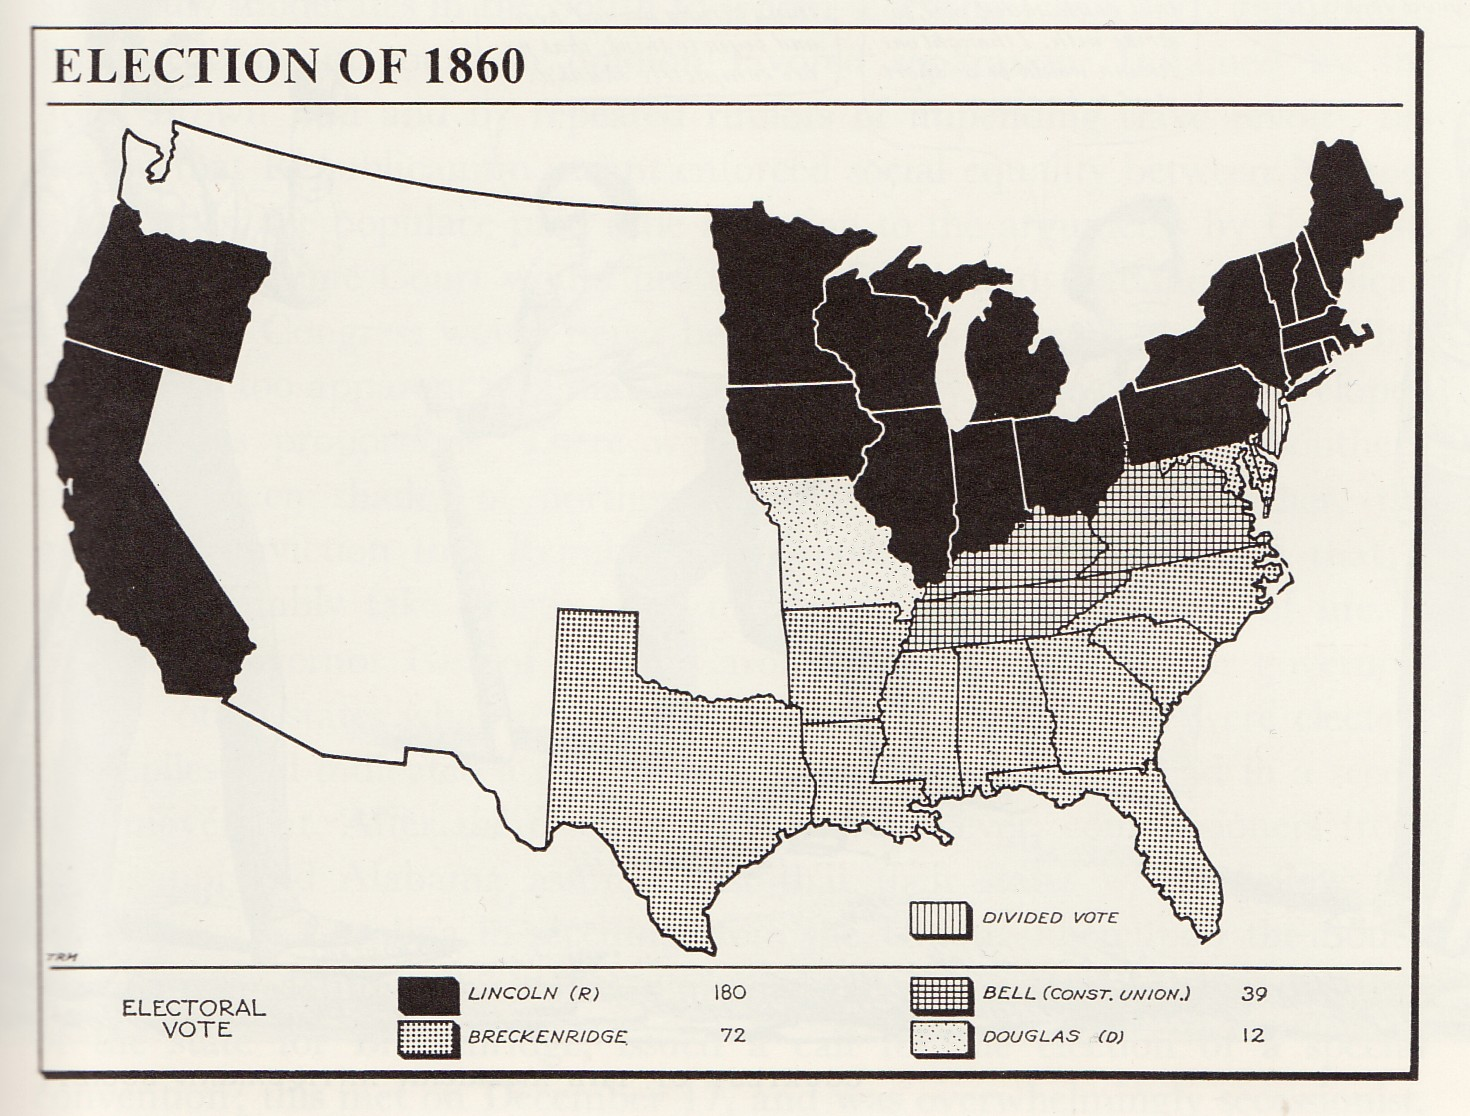 Sectional Crisis Exhibit - Secession map of us 1860